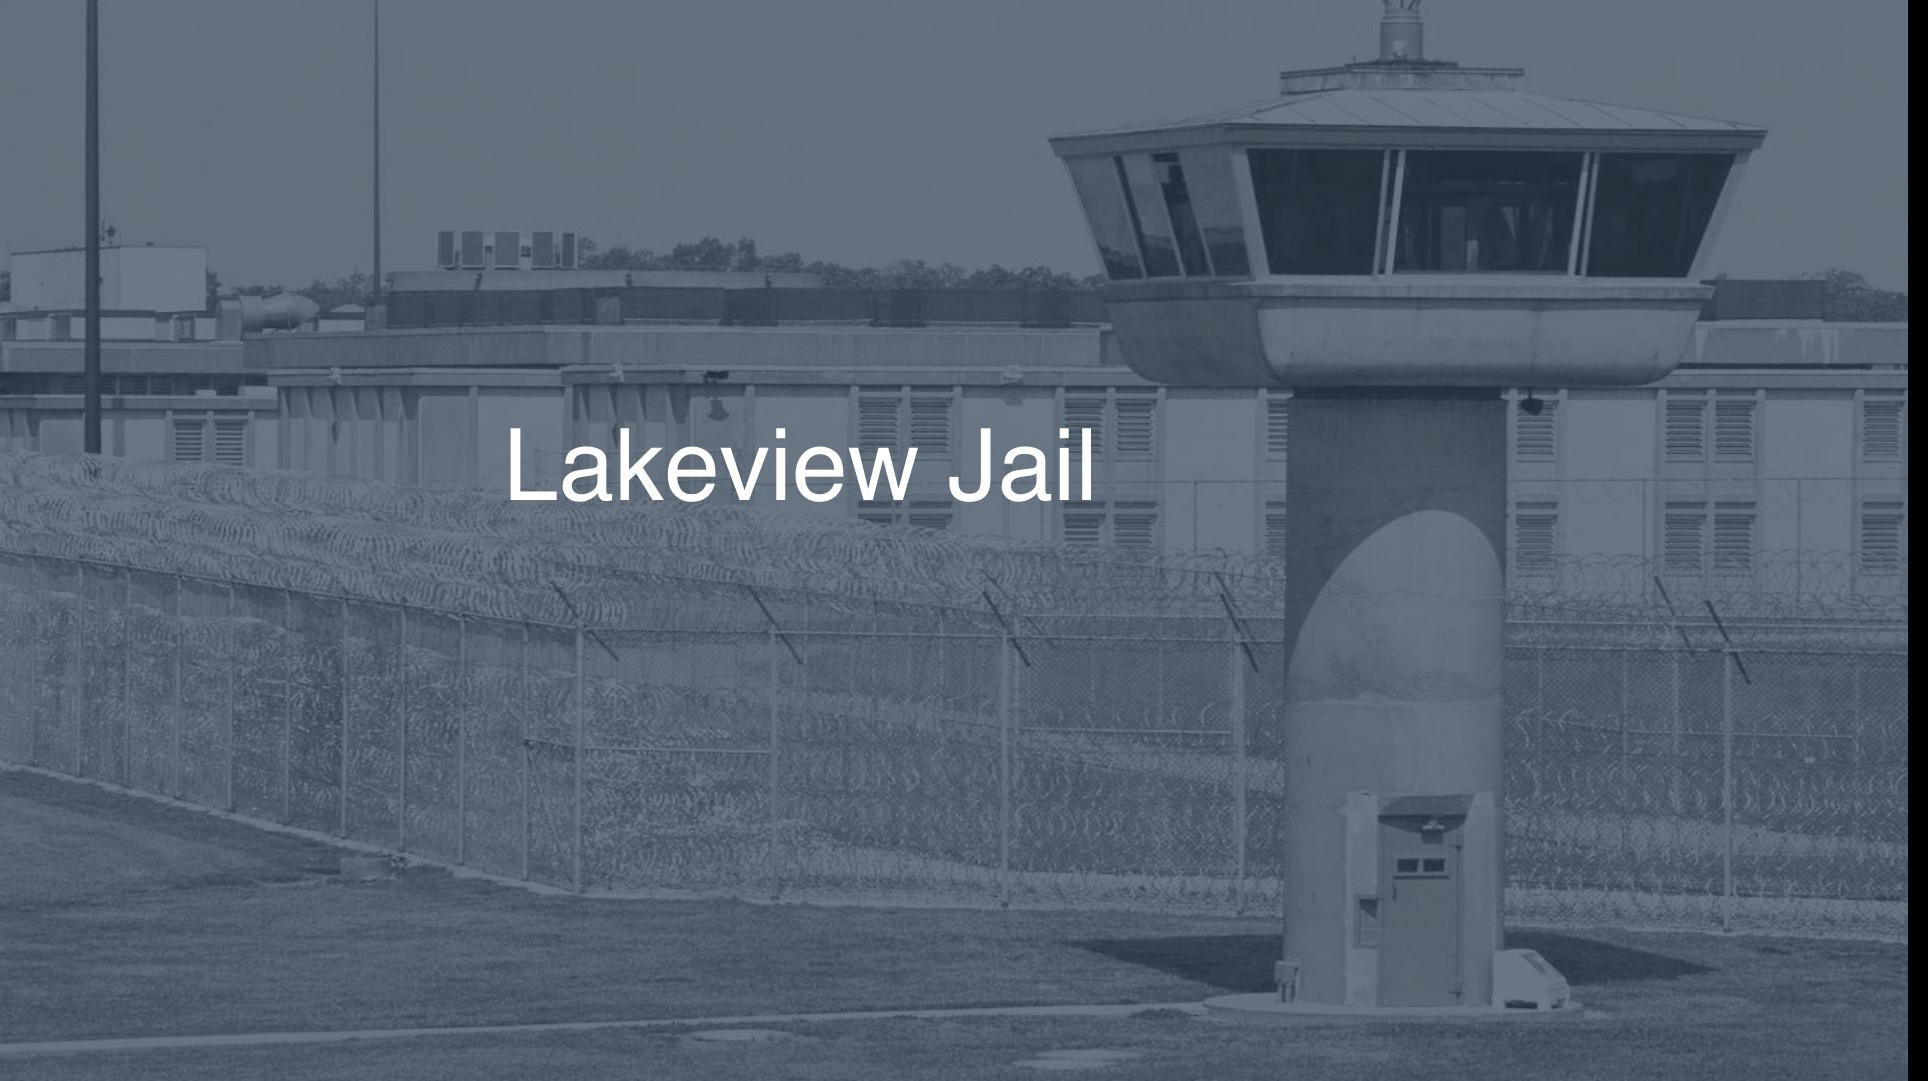 Lakeview Jail correctional facility picture